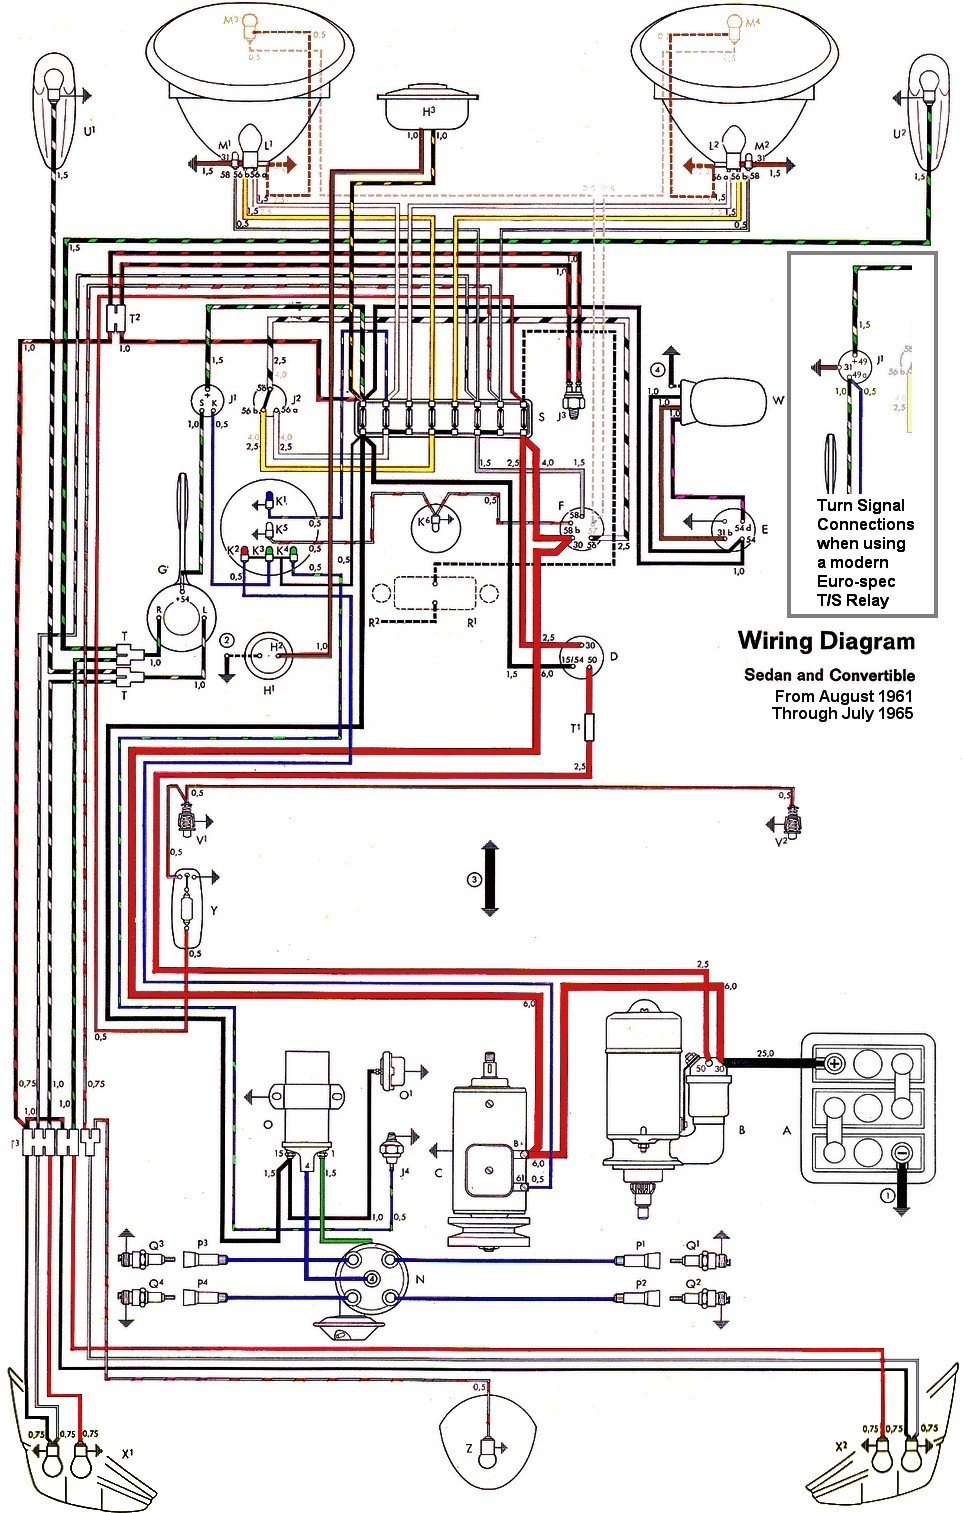 bug_62 65withinset wiring diagram vw beetle sedan and convertible 1961 1965 vw 76 vw beetle wiring diagram at edmiracle.co